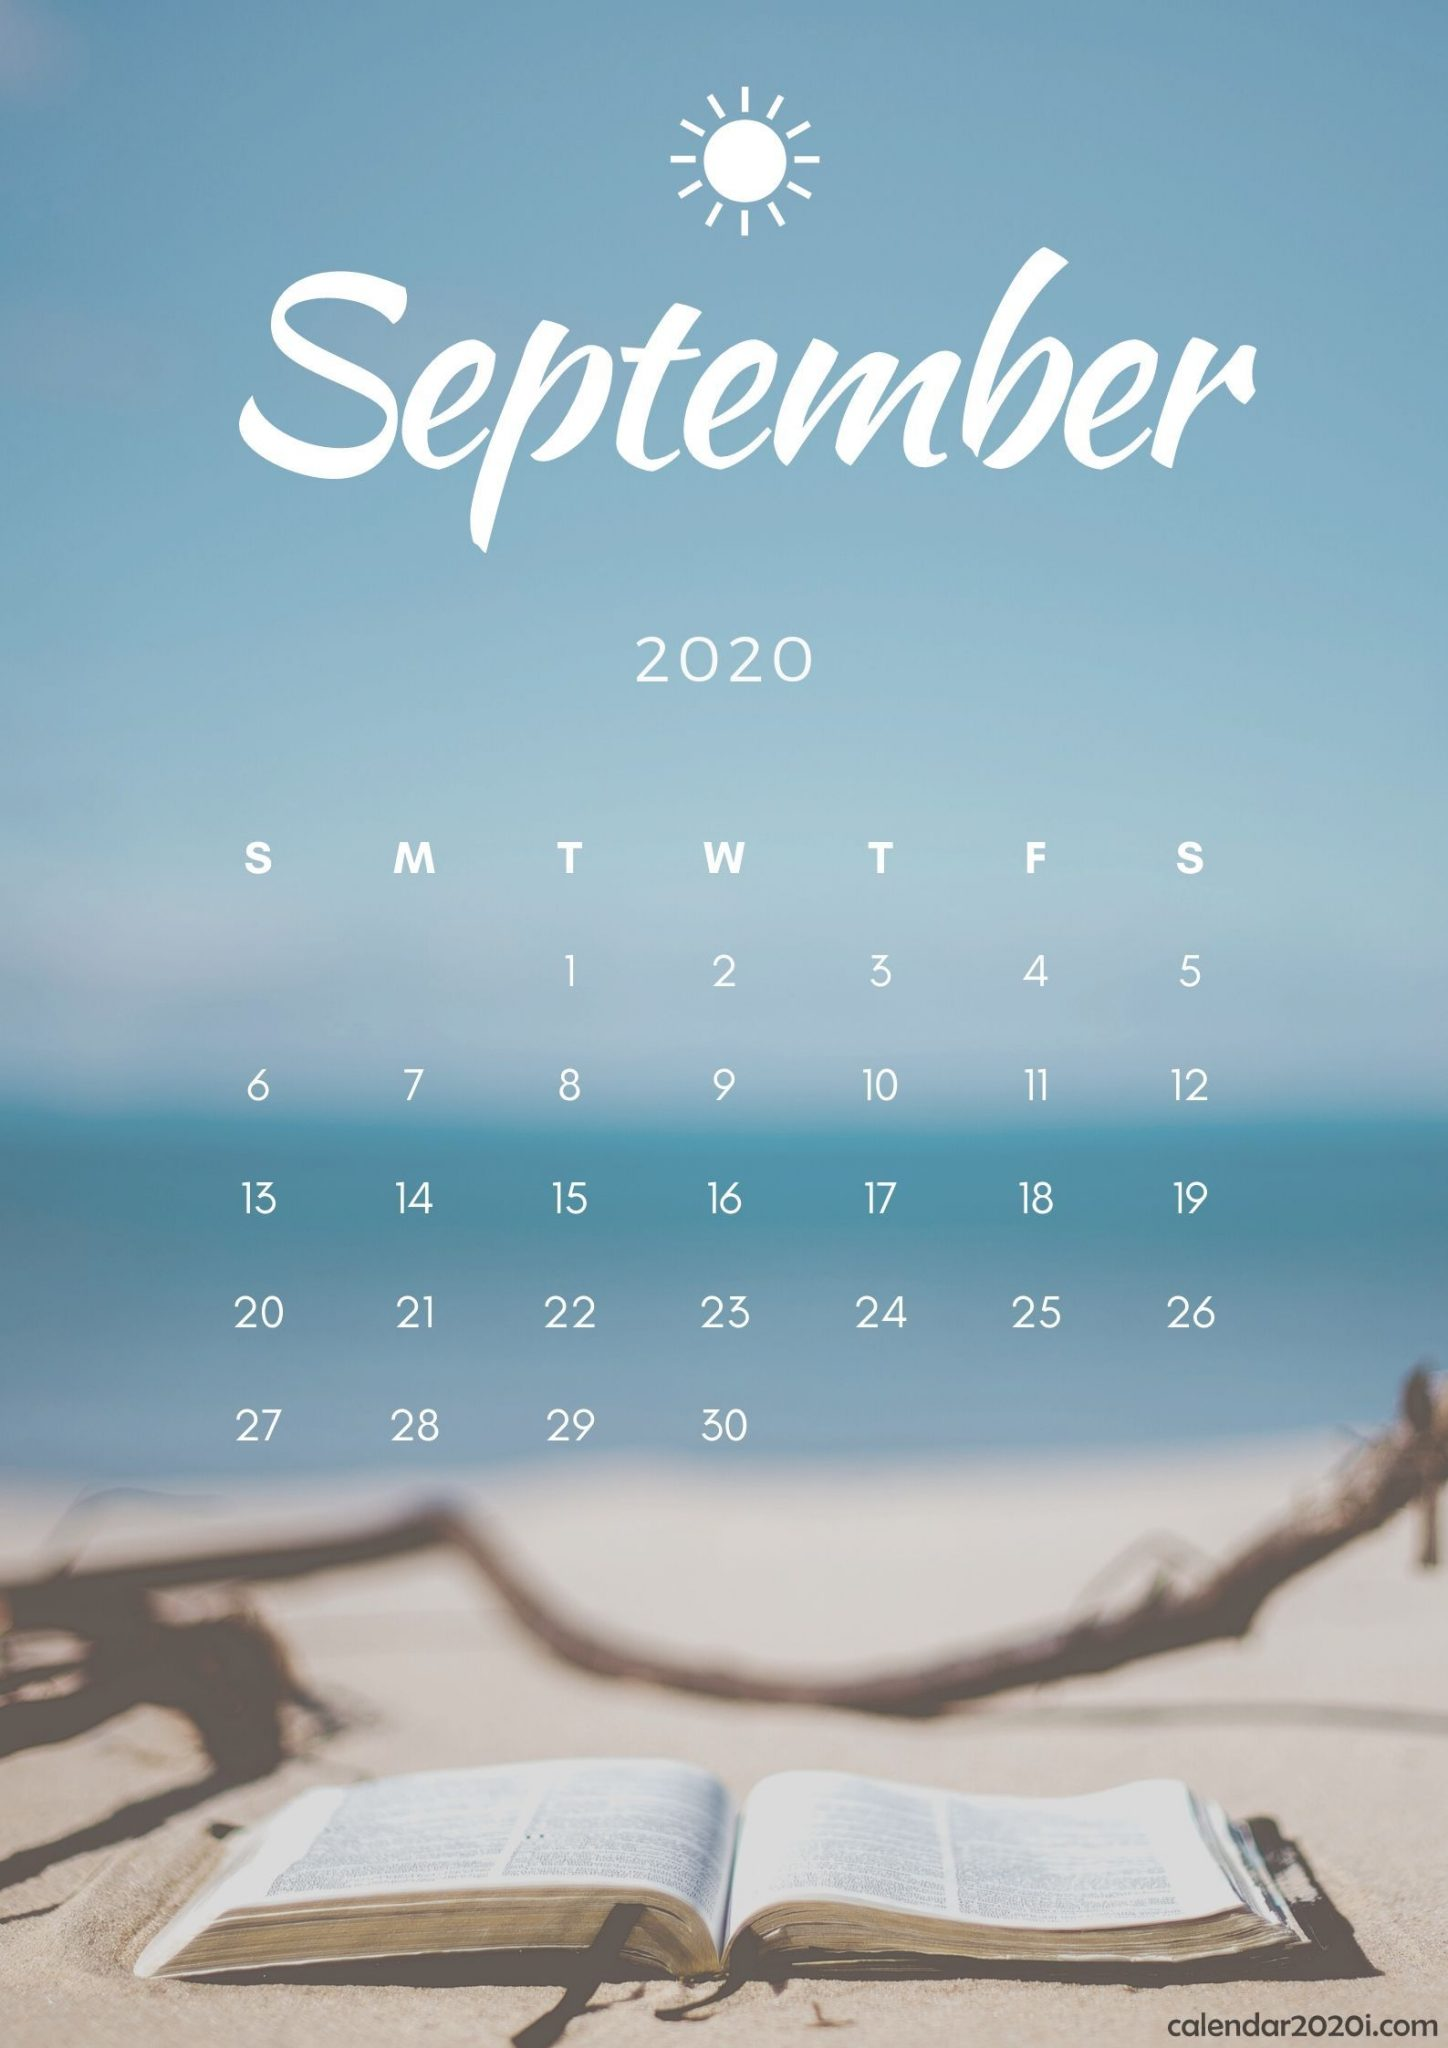 September 2020 iPhone Wallpaper